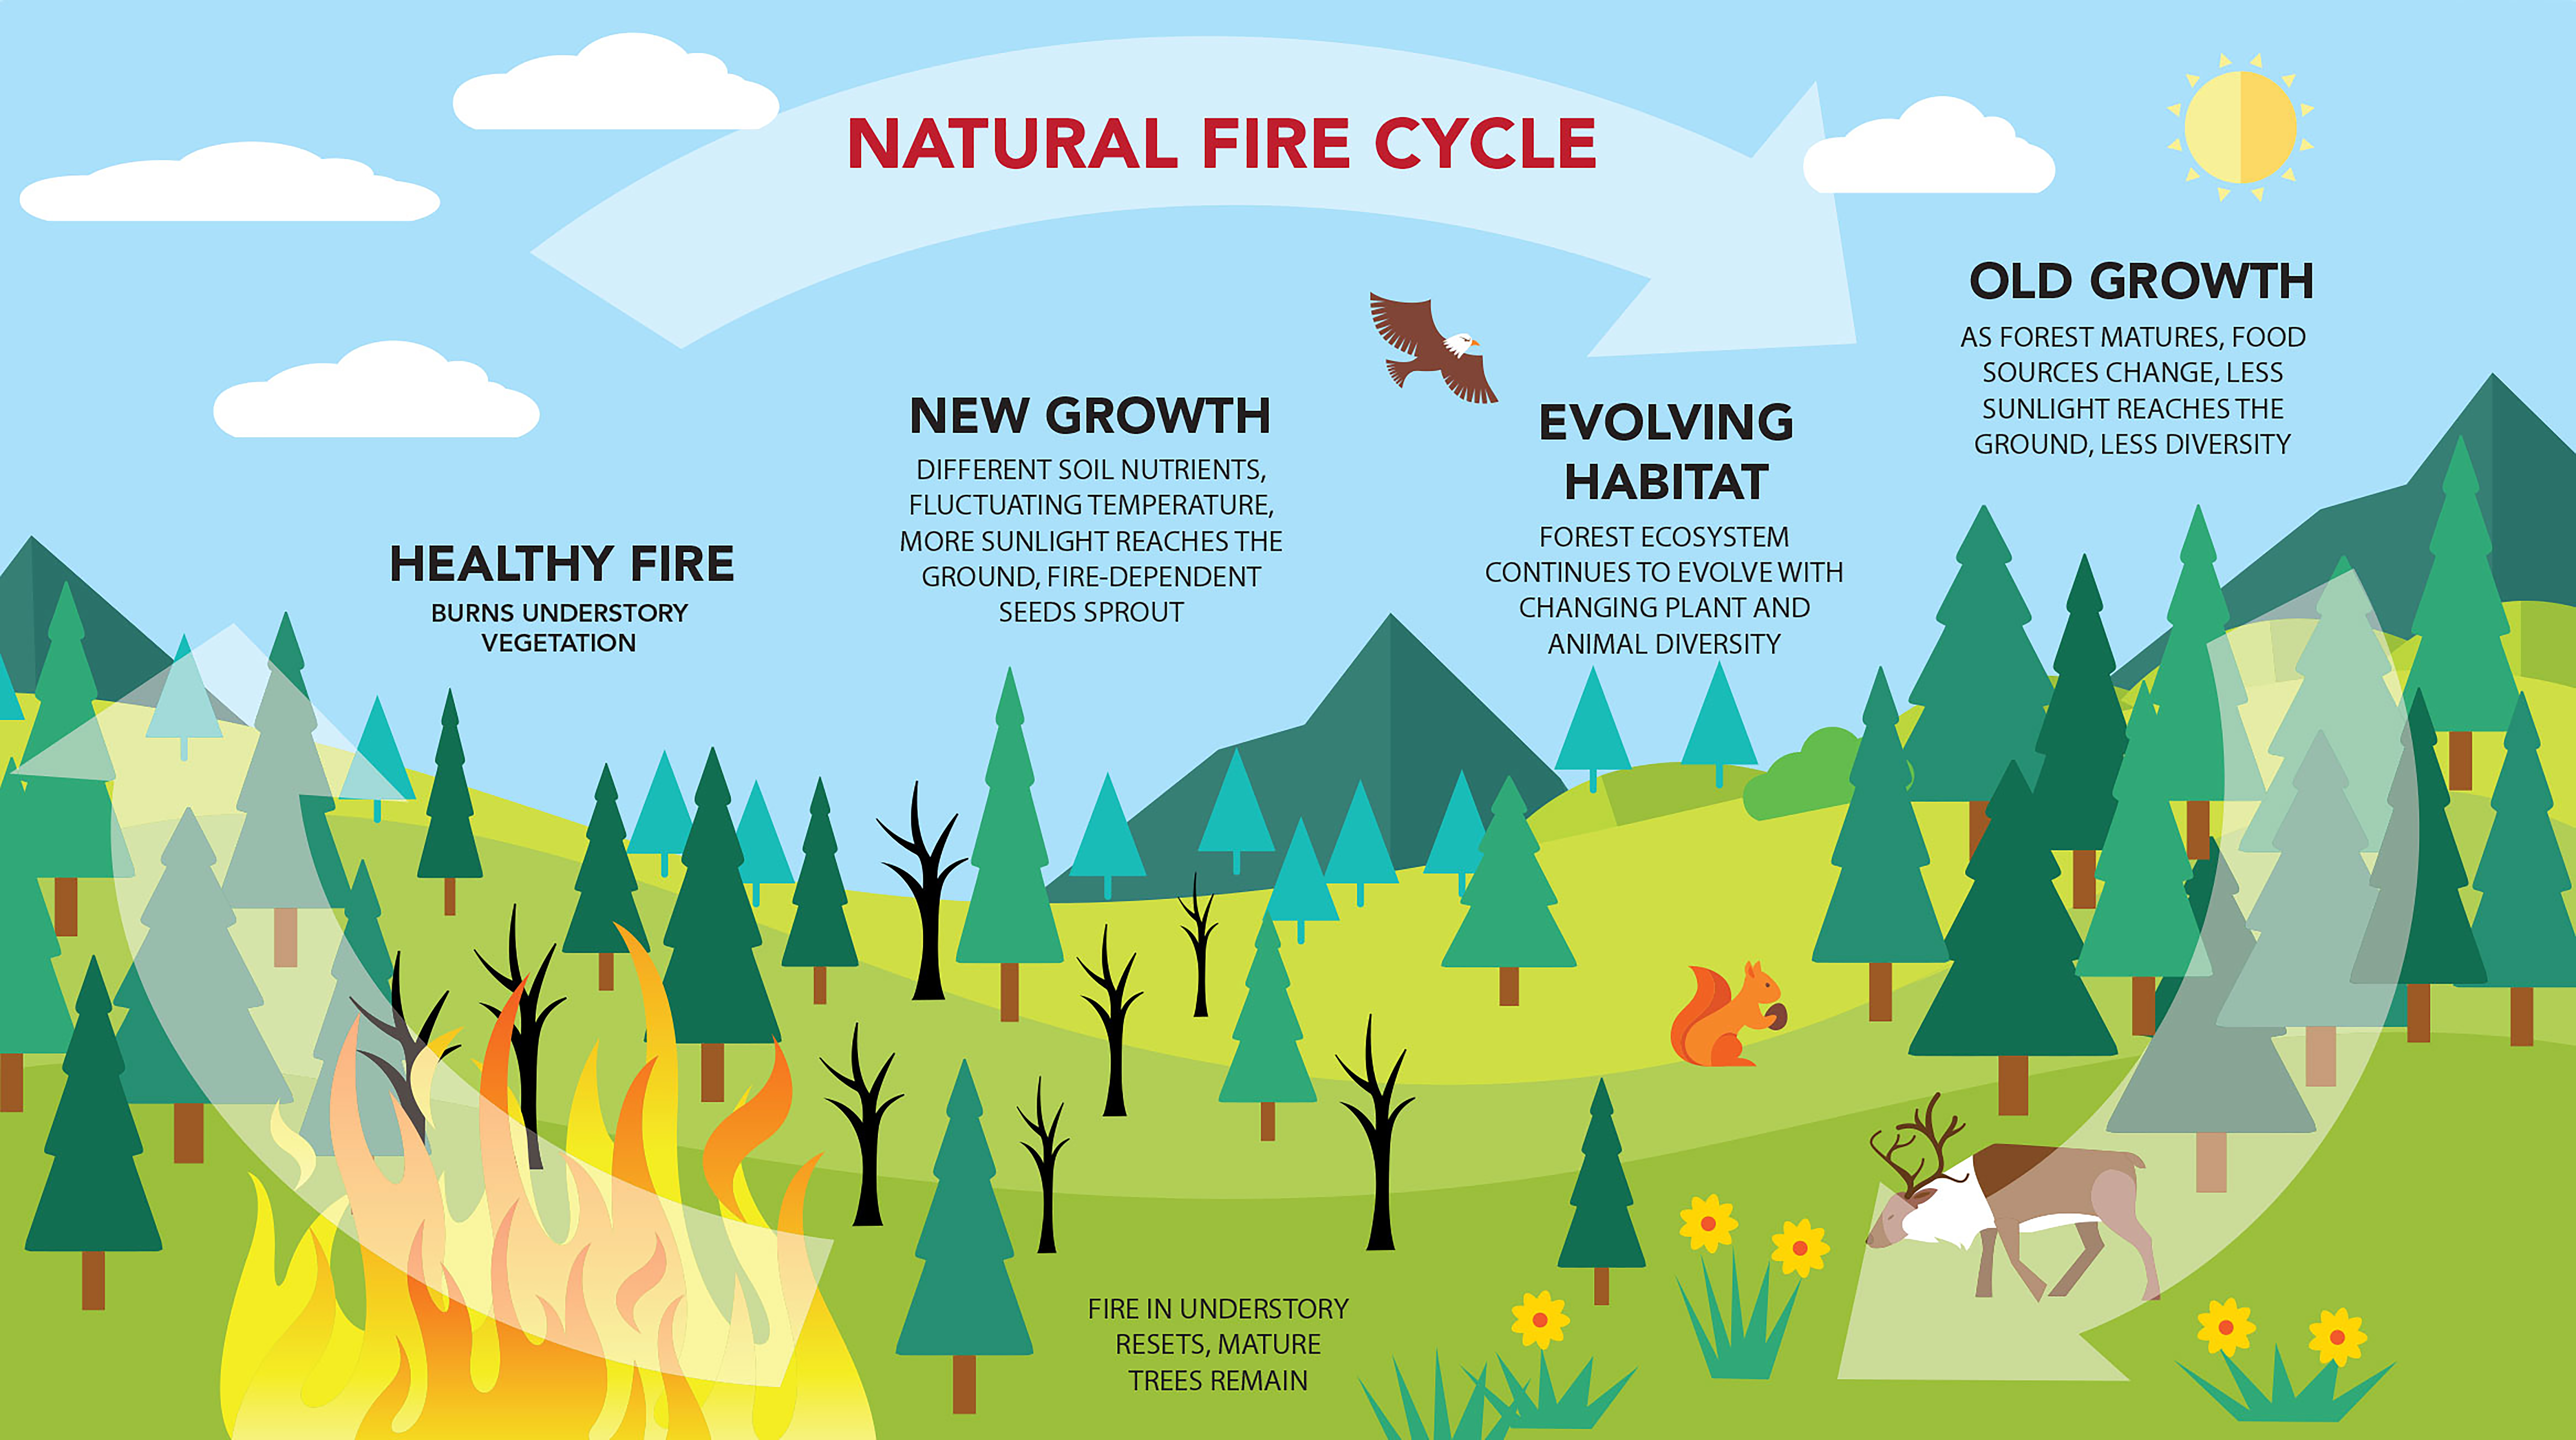 Check out the Natural Fire Cycle